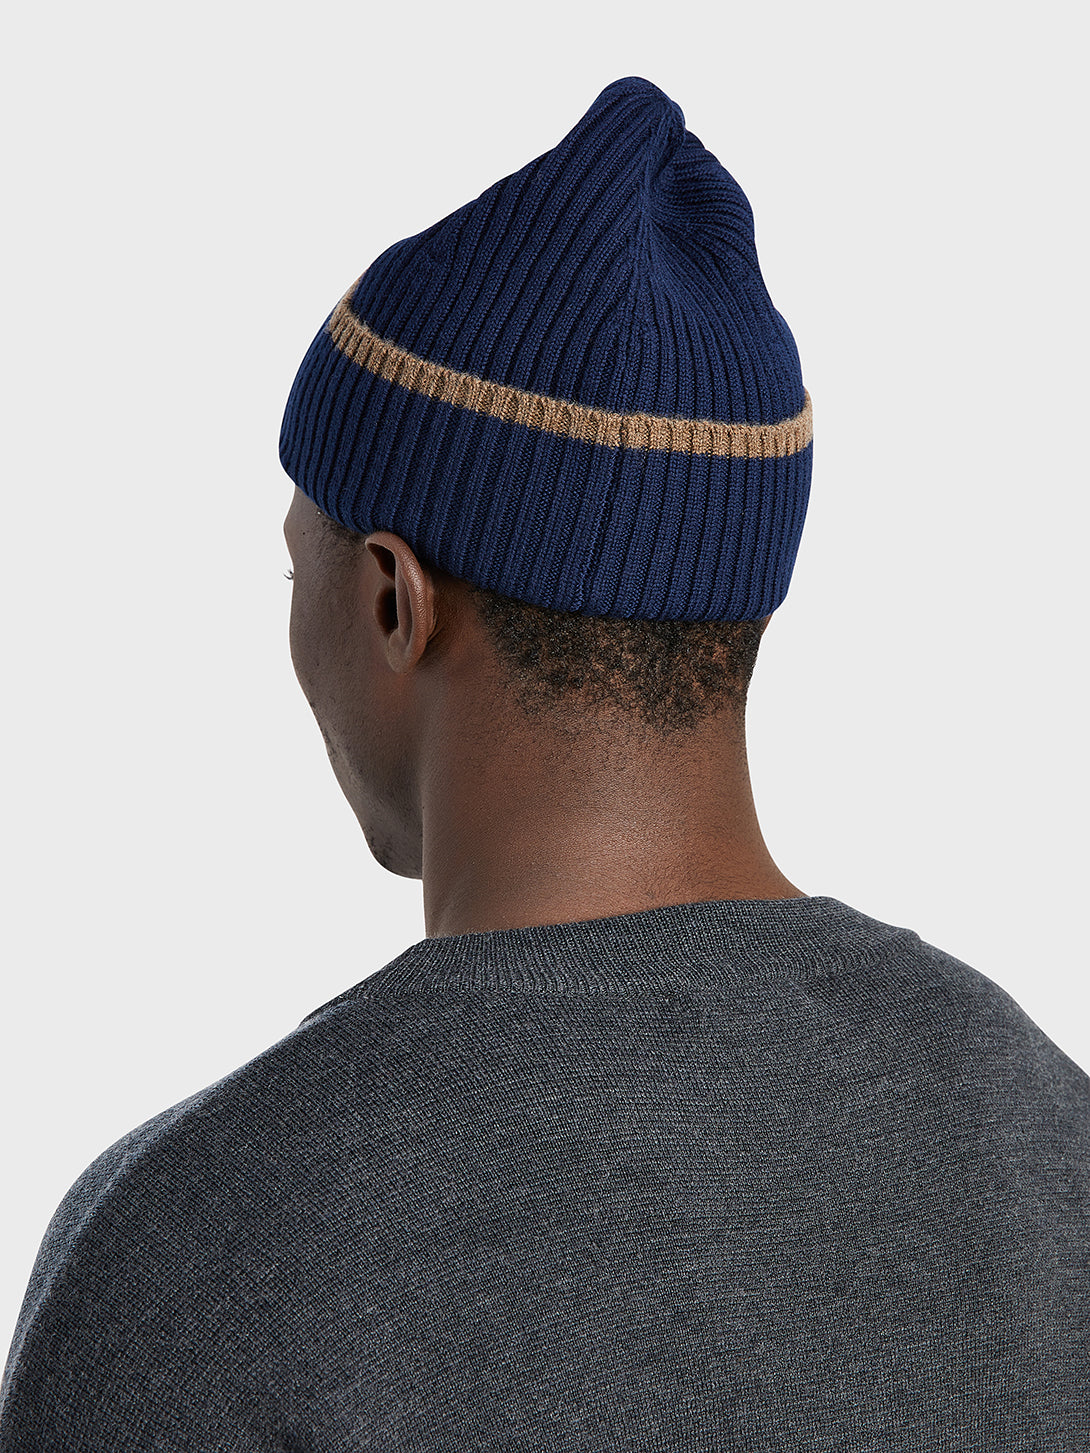 black friday deals ONS Clothing Men's beanie in NAVY